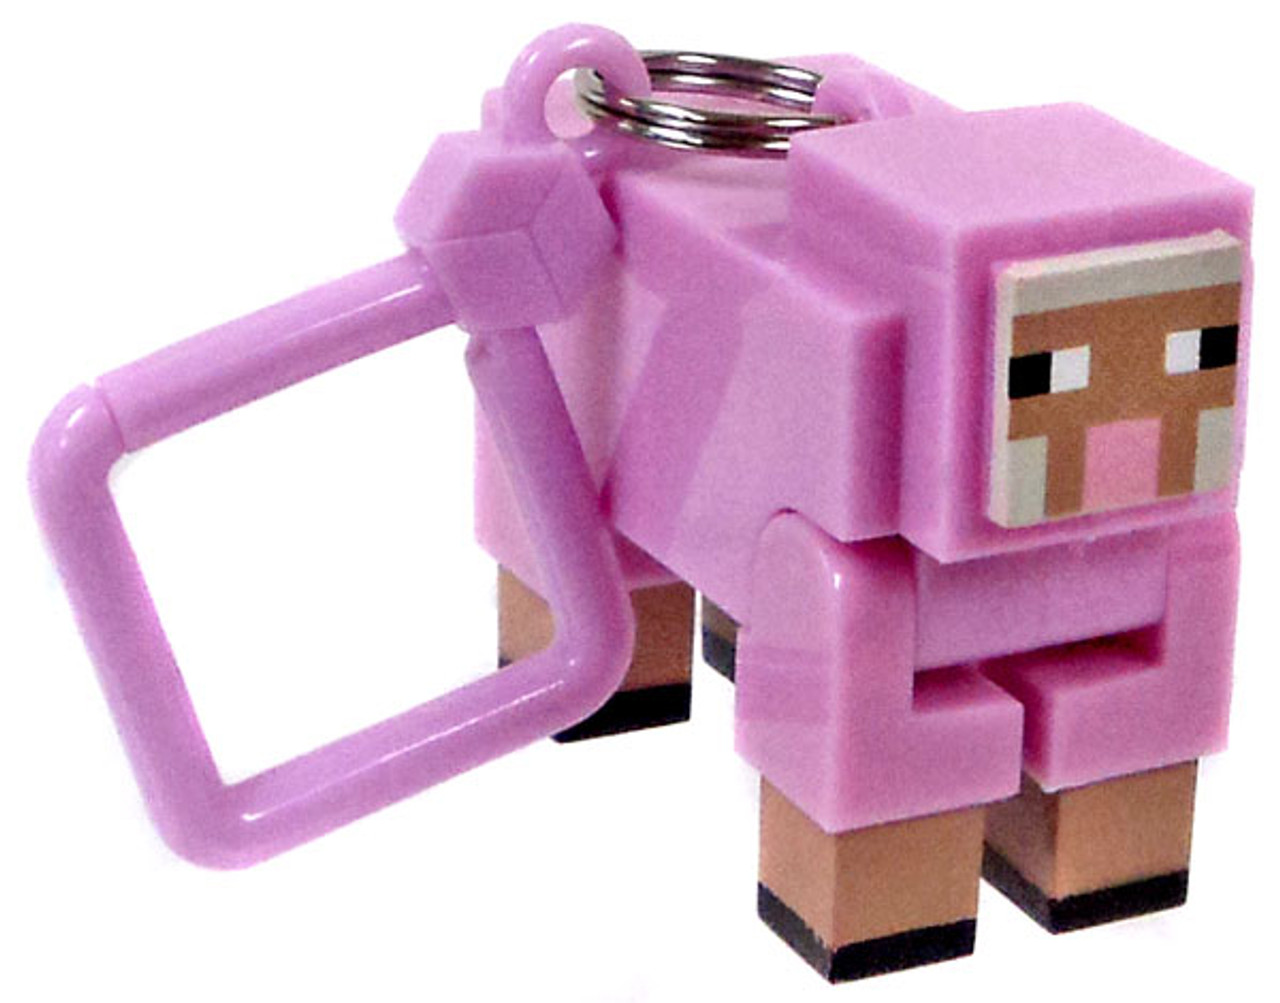 minecraft hangers series 1 pink sheep 3 keychain chase variant loose